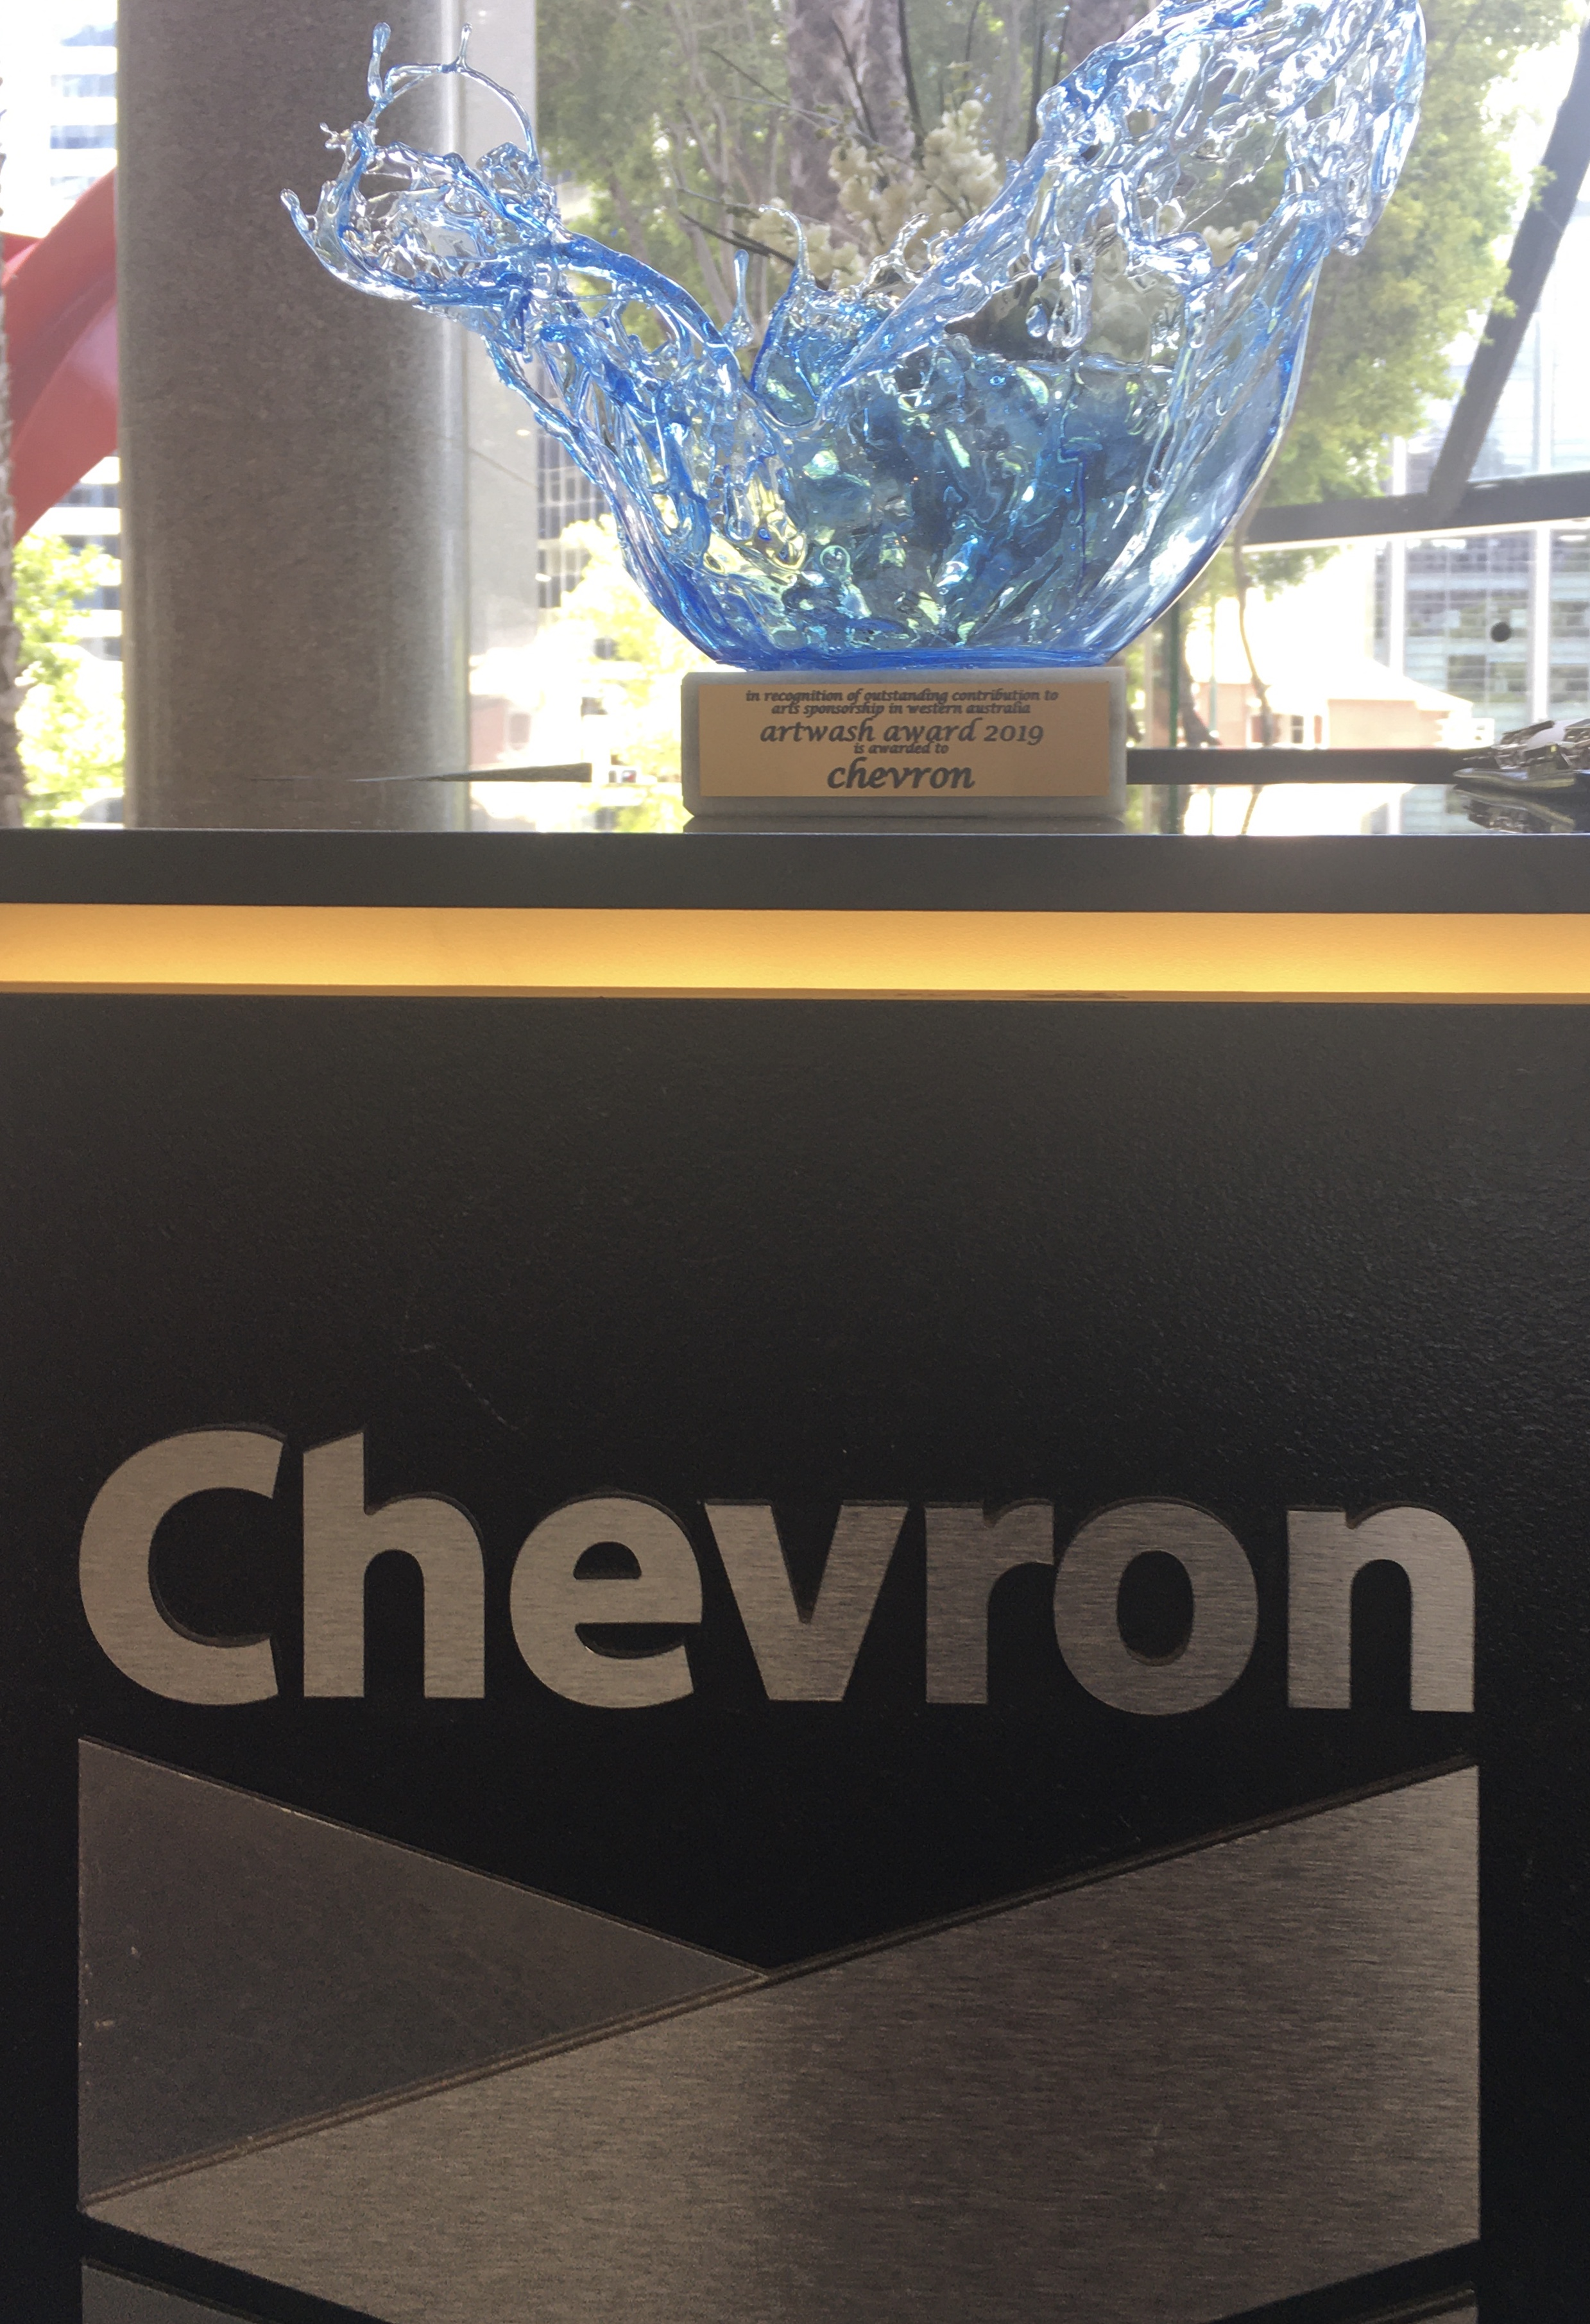 artwash award at chevron hq